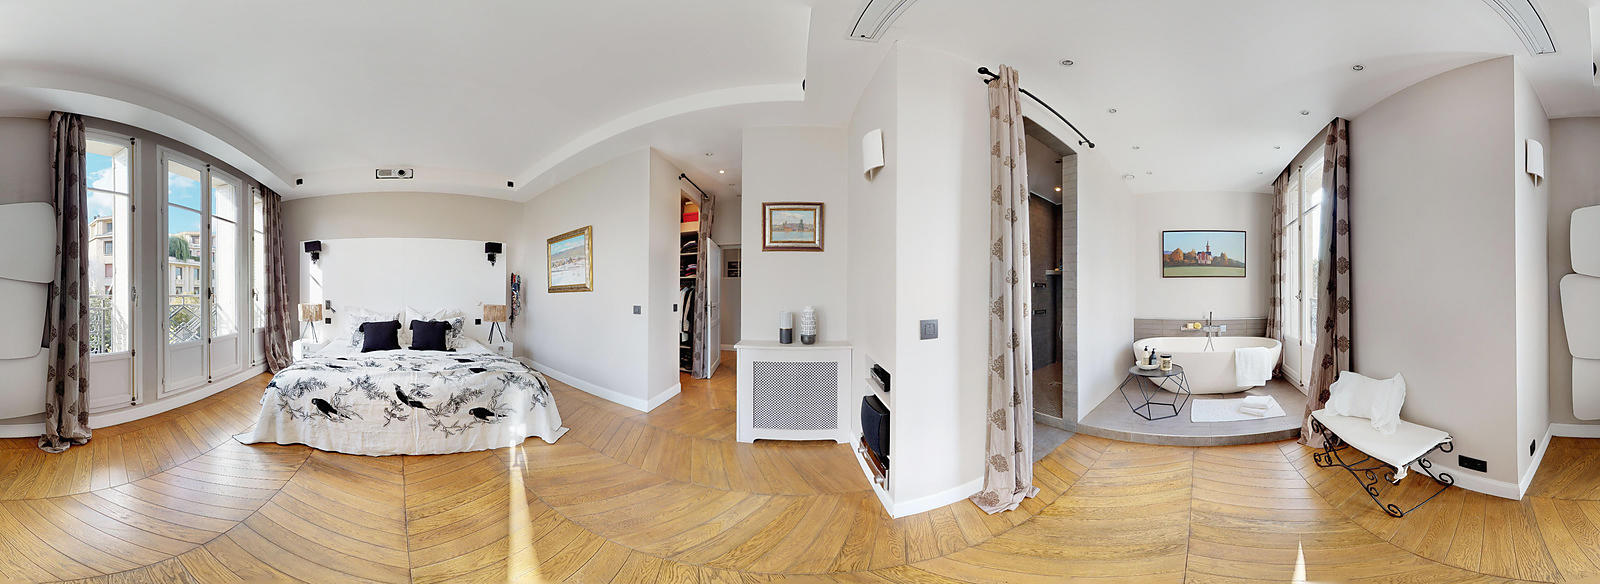 Appartement-Paris16-NF-10042019_193615_copie